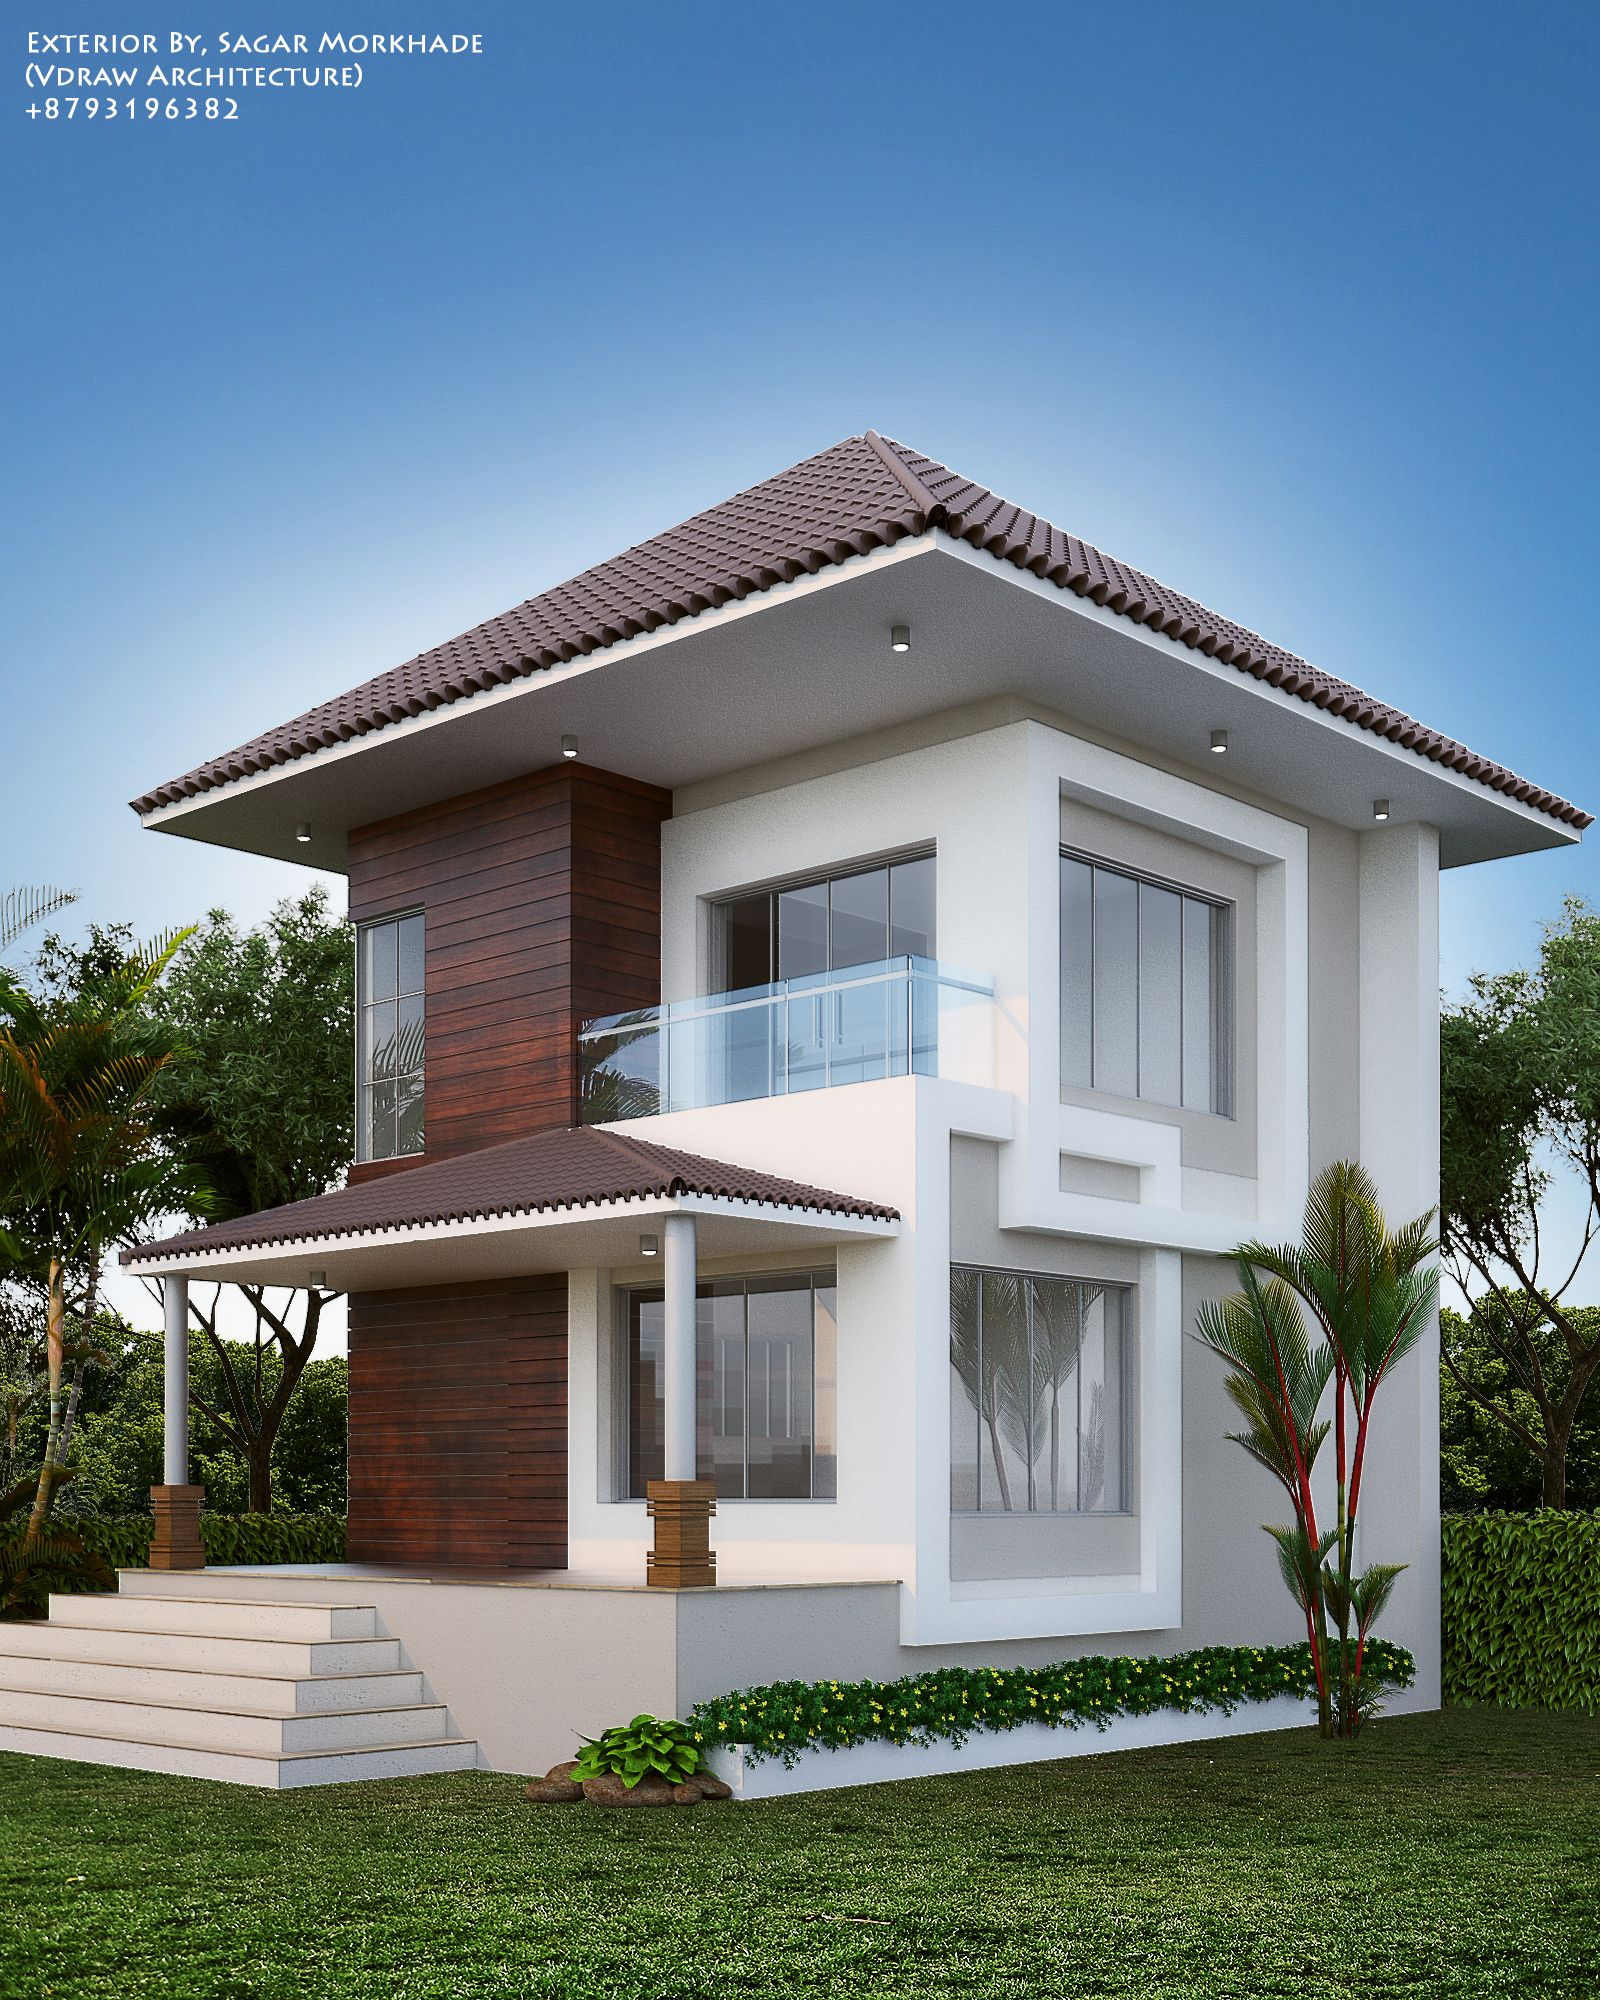 1 464 Small Modern Exterior Home Design Ideas Remodel Pictures: #Modern #Residential #House #bungalow #Exterior By, Ar.Sagar Morkhade (Vdraw Architecture) +91